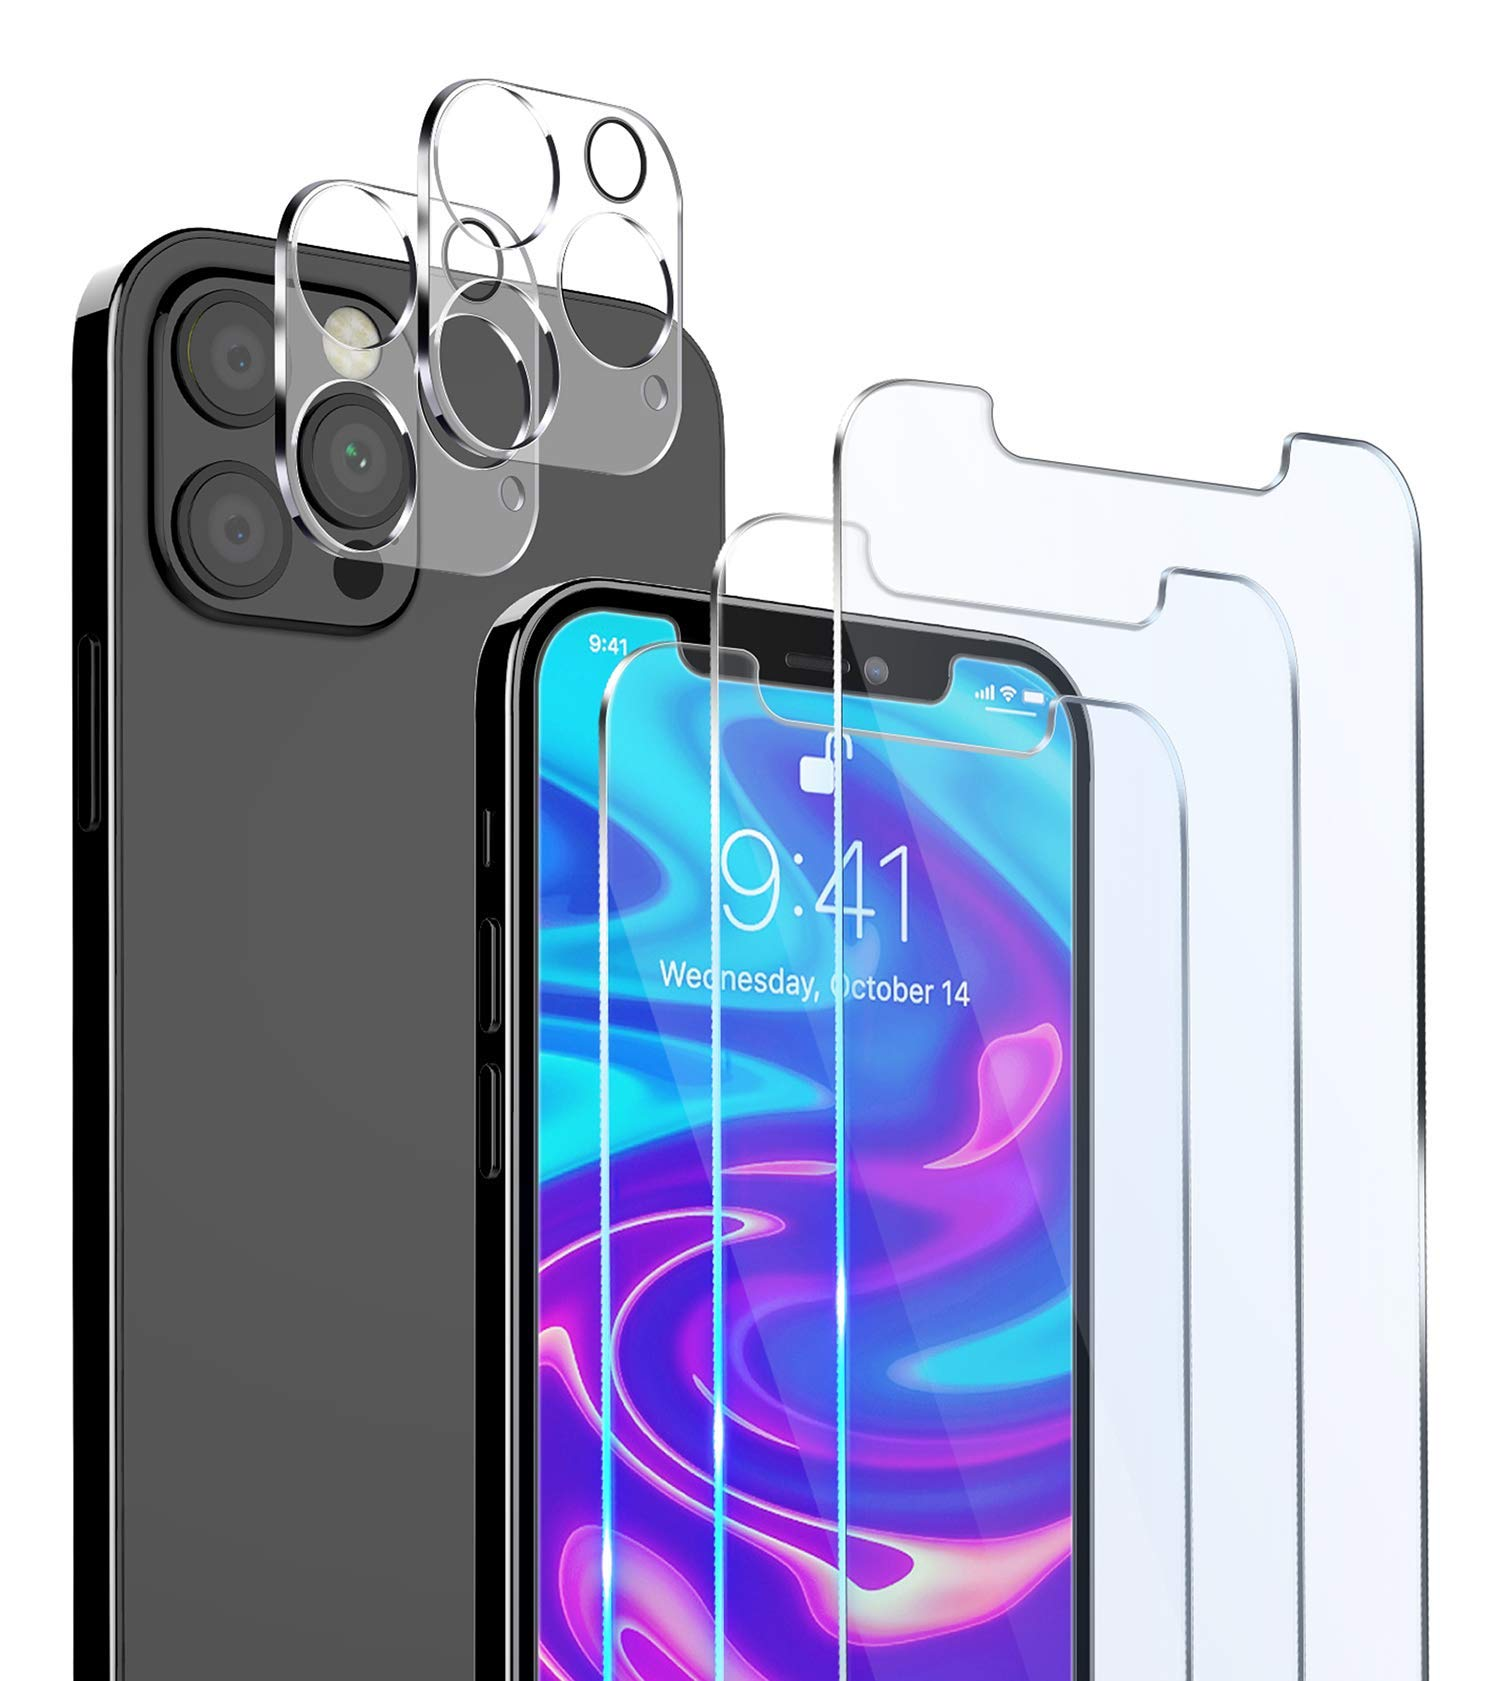 """[5 Packs] MMY 3 Pack Screen Protector for iPhone 12 Pro Max [6.7""""] + 2 Pack Camera Lens Protector,Tempered Glass Film for iPhone 12 Pro Max,HD Clear - Bubble Free - Scratch Resistant (Clear)"""